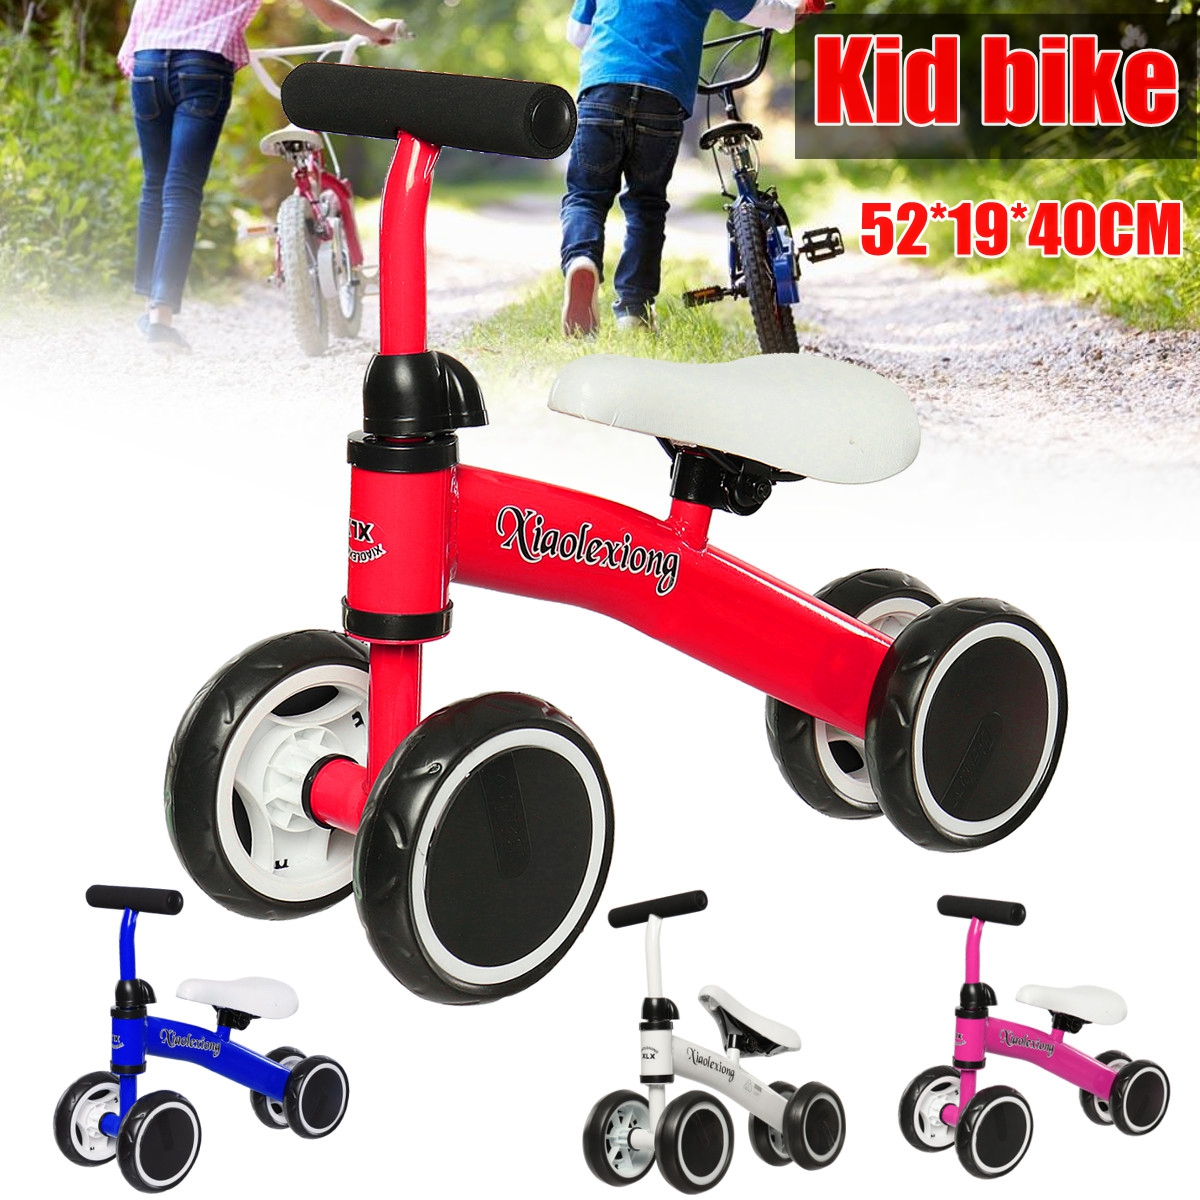 Reversible Kids Toddlers Balance Bike Bicycle Iron Children Bikes Little Zoomer Toy Gift For Baby Children 12 14 16 kids bike children bicycle for 2 8 years boy grils ride kids bicycle with pedal toys children bike colorful adult